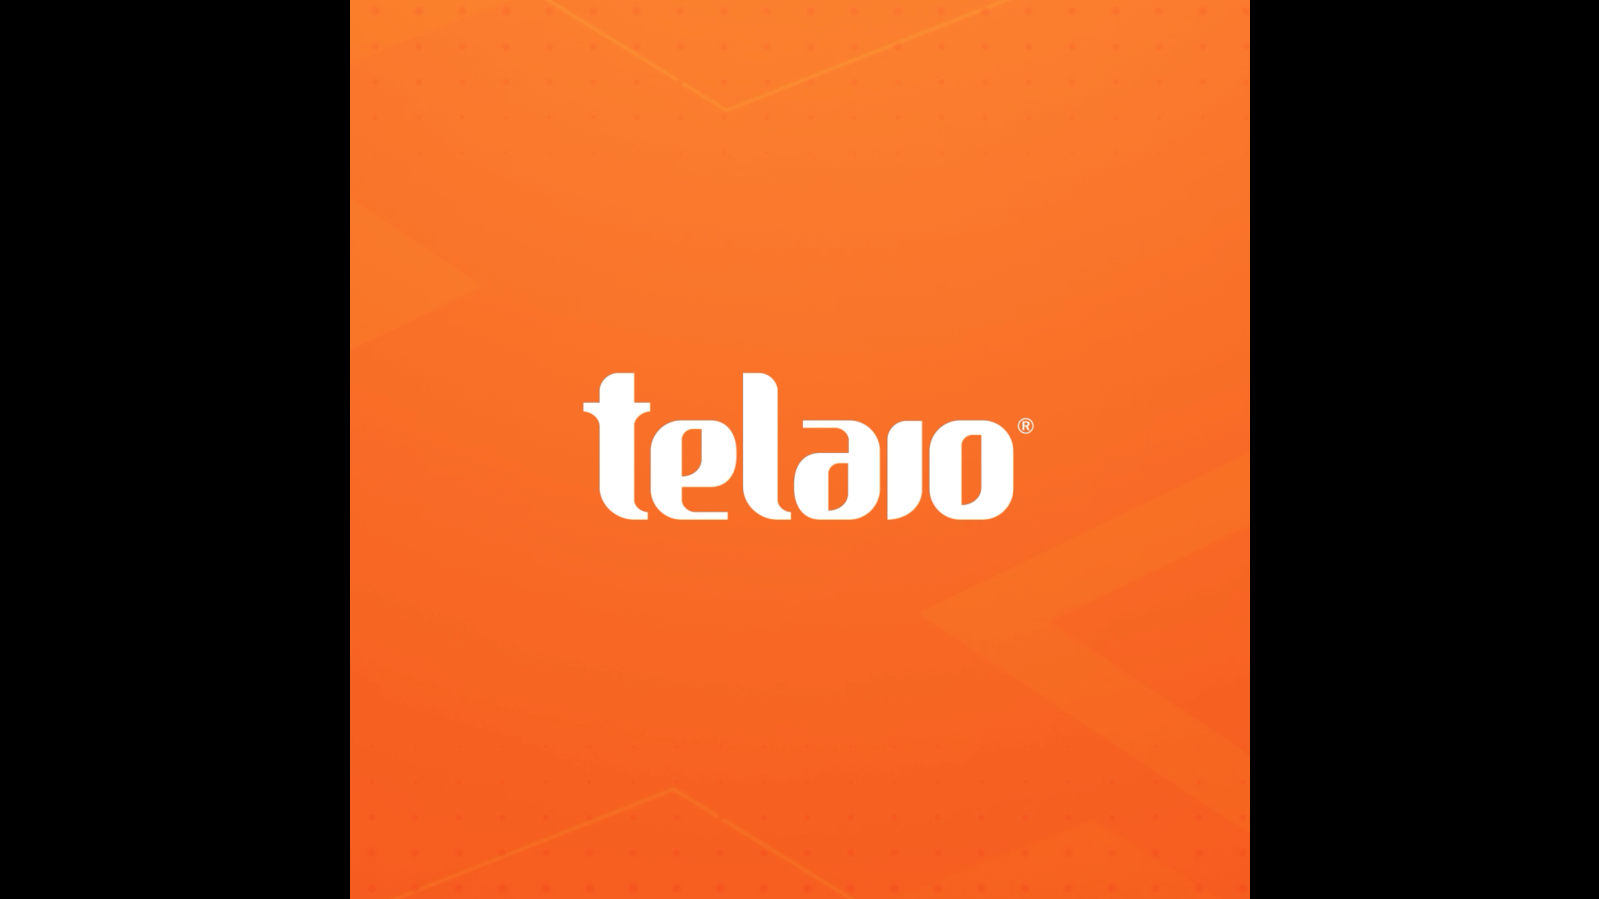 Telaio konnecting brands with people